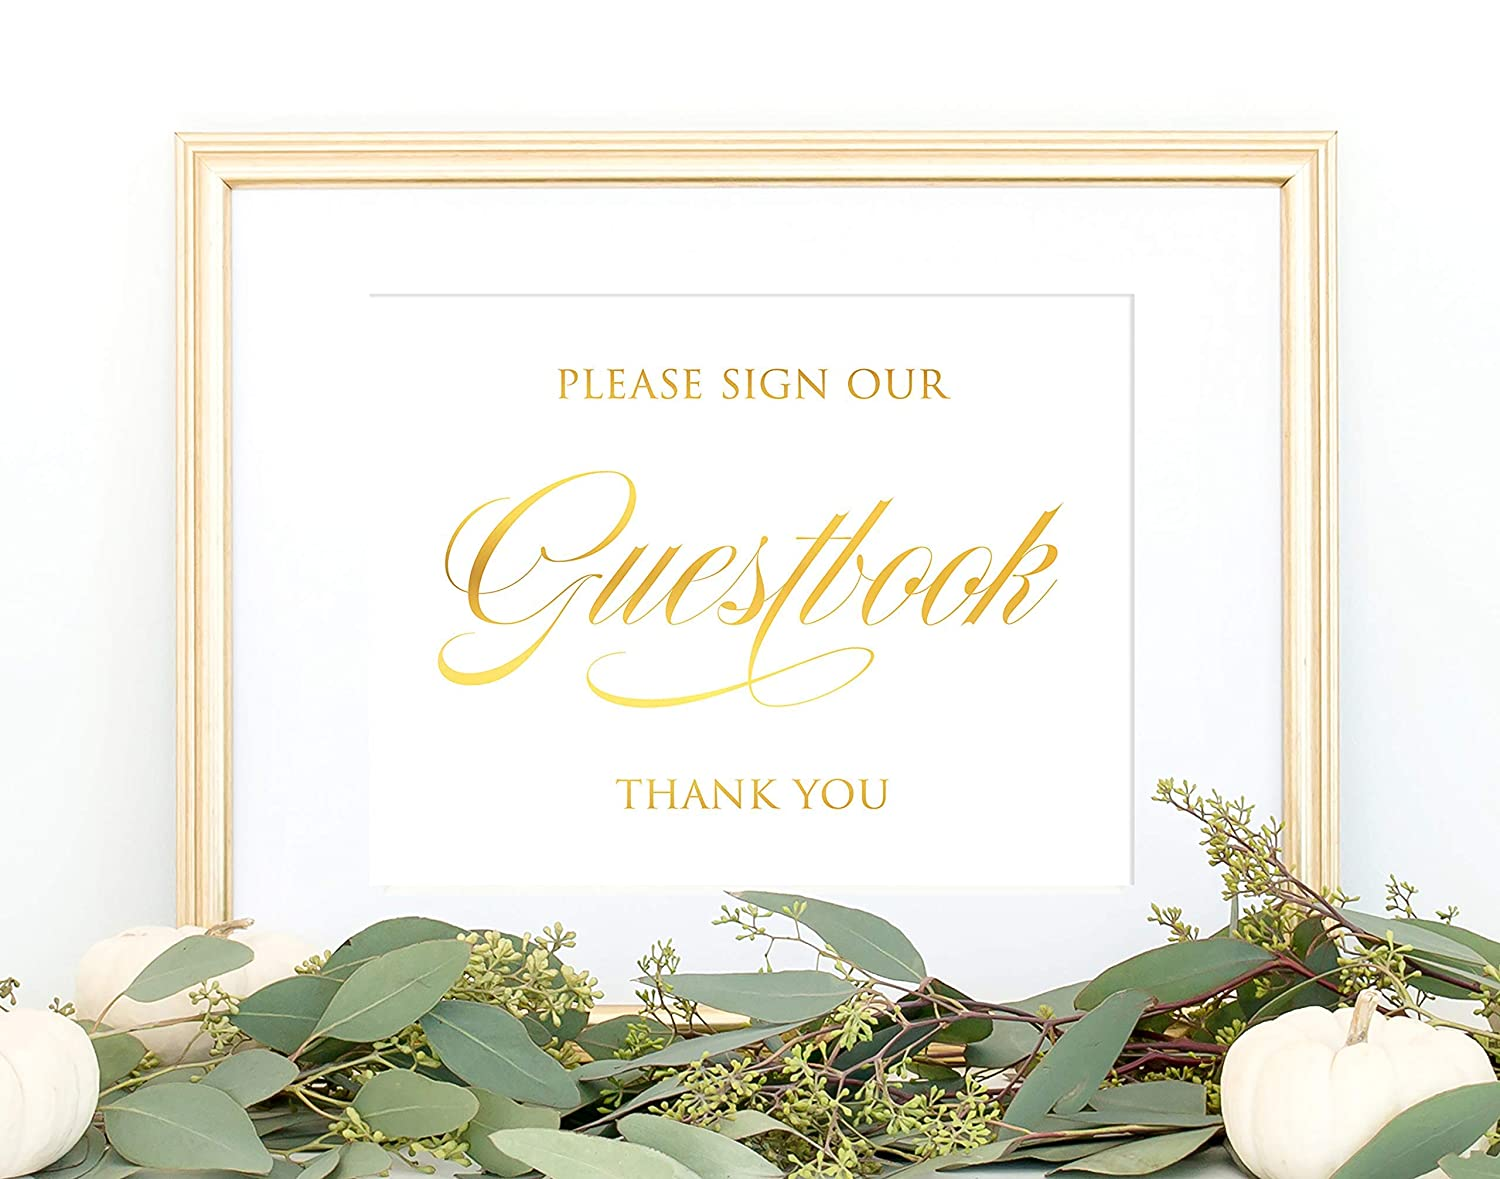 Guestbook Sign In Decorations Wedding Guest Book Sign Gold Foil Wedding Signage